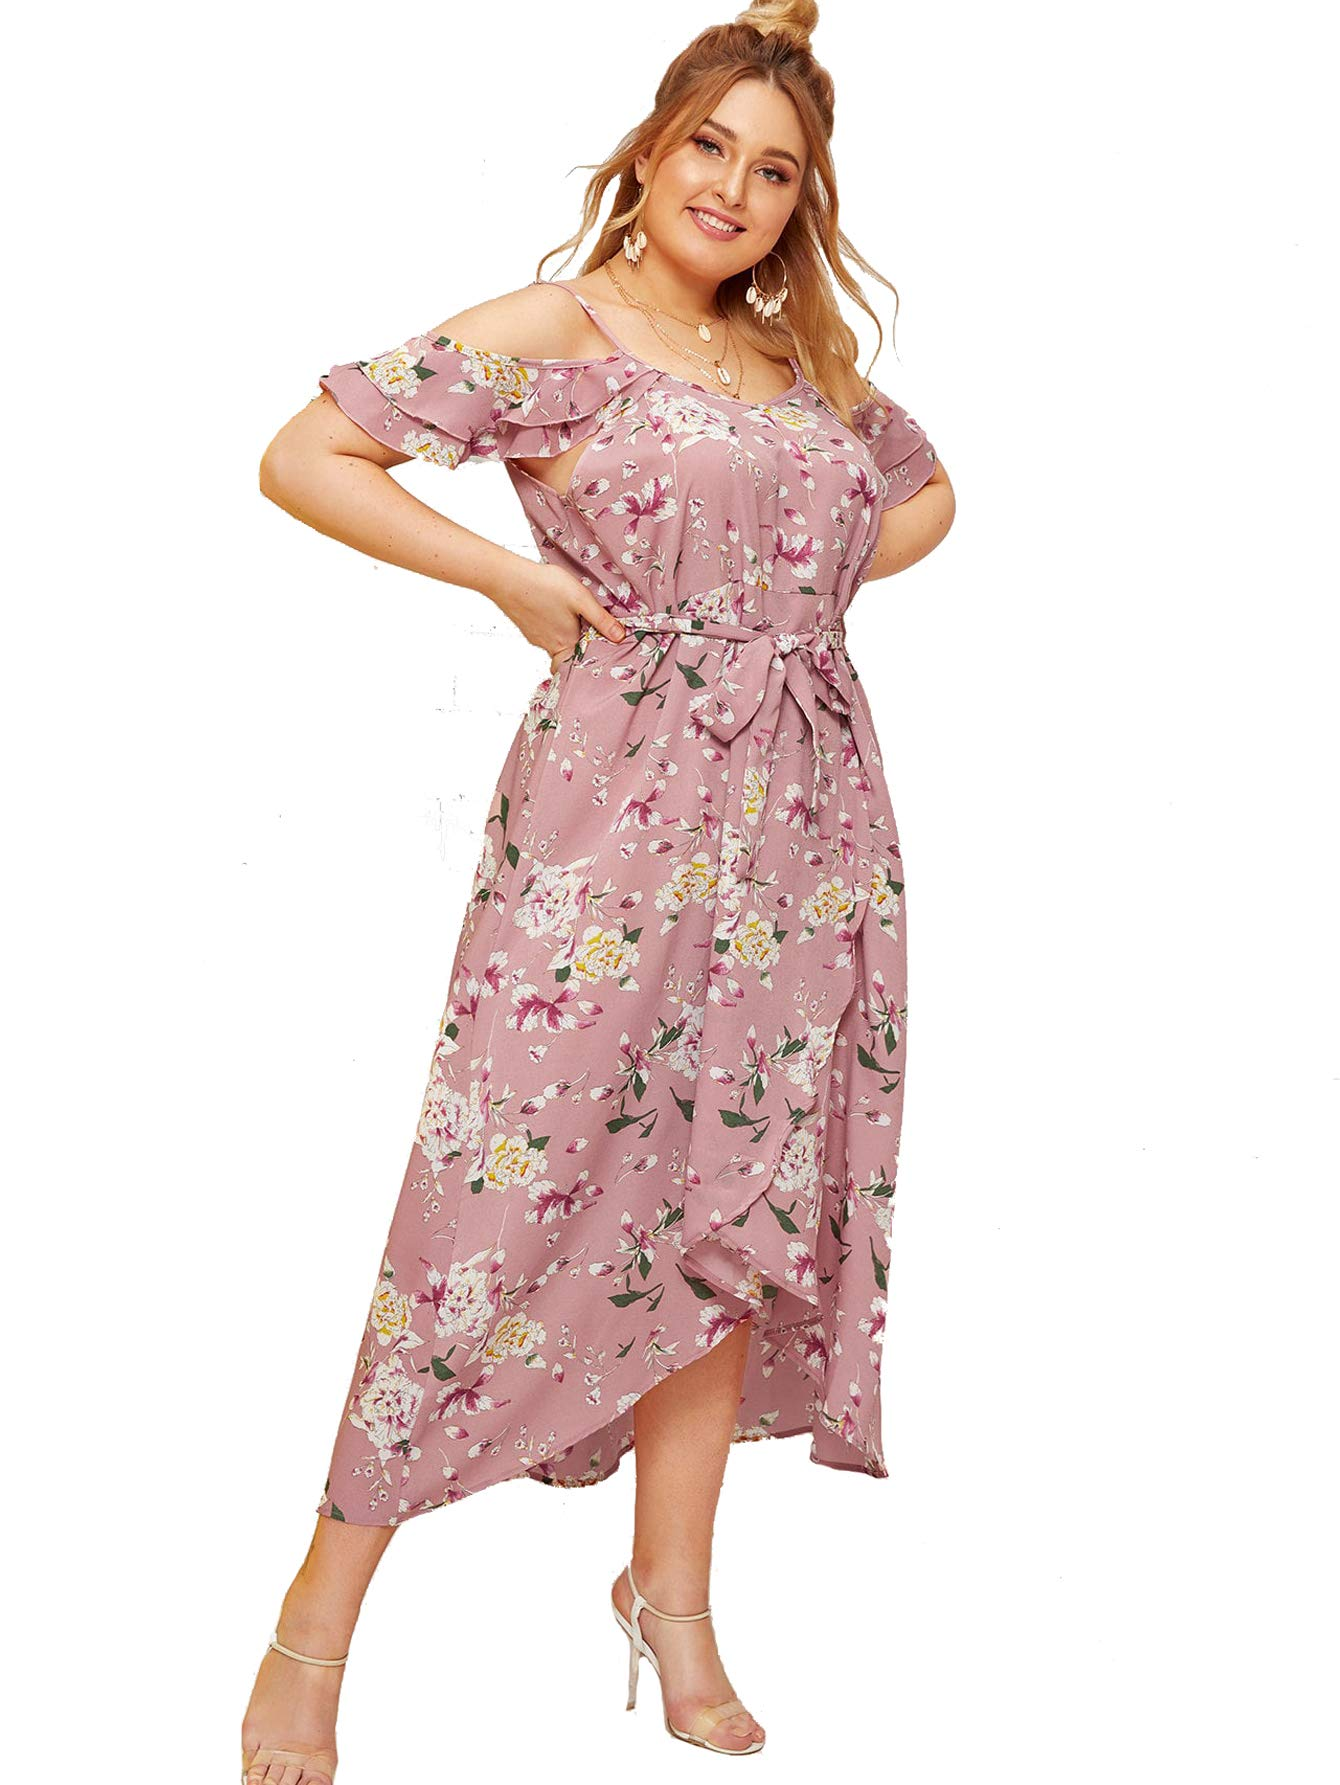 Milumia Women Plus Size Bridesmaid Party Homecoming Dress Cold Shoulder Pink 3X by Milumia